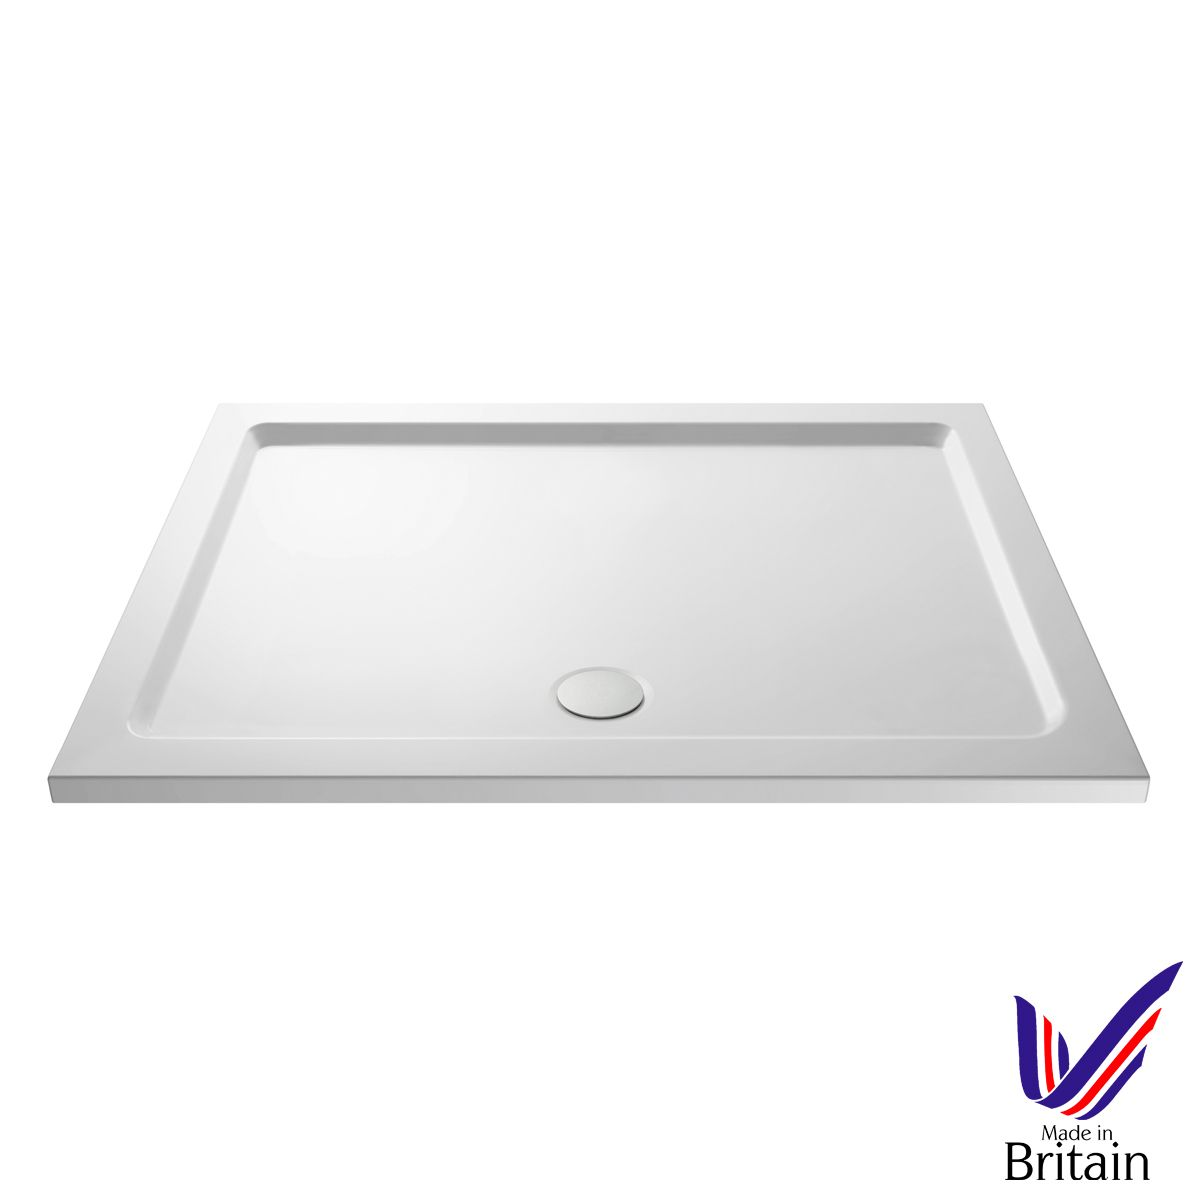 1800 x 900 Shower Tray Rectangular Low Profile by Pearlstone